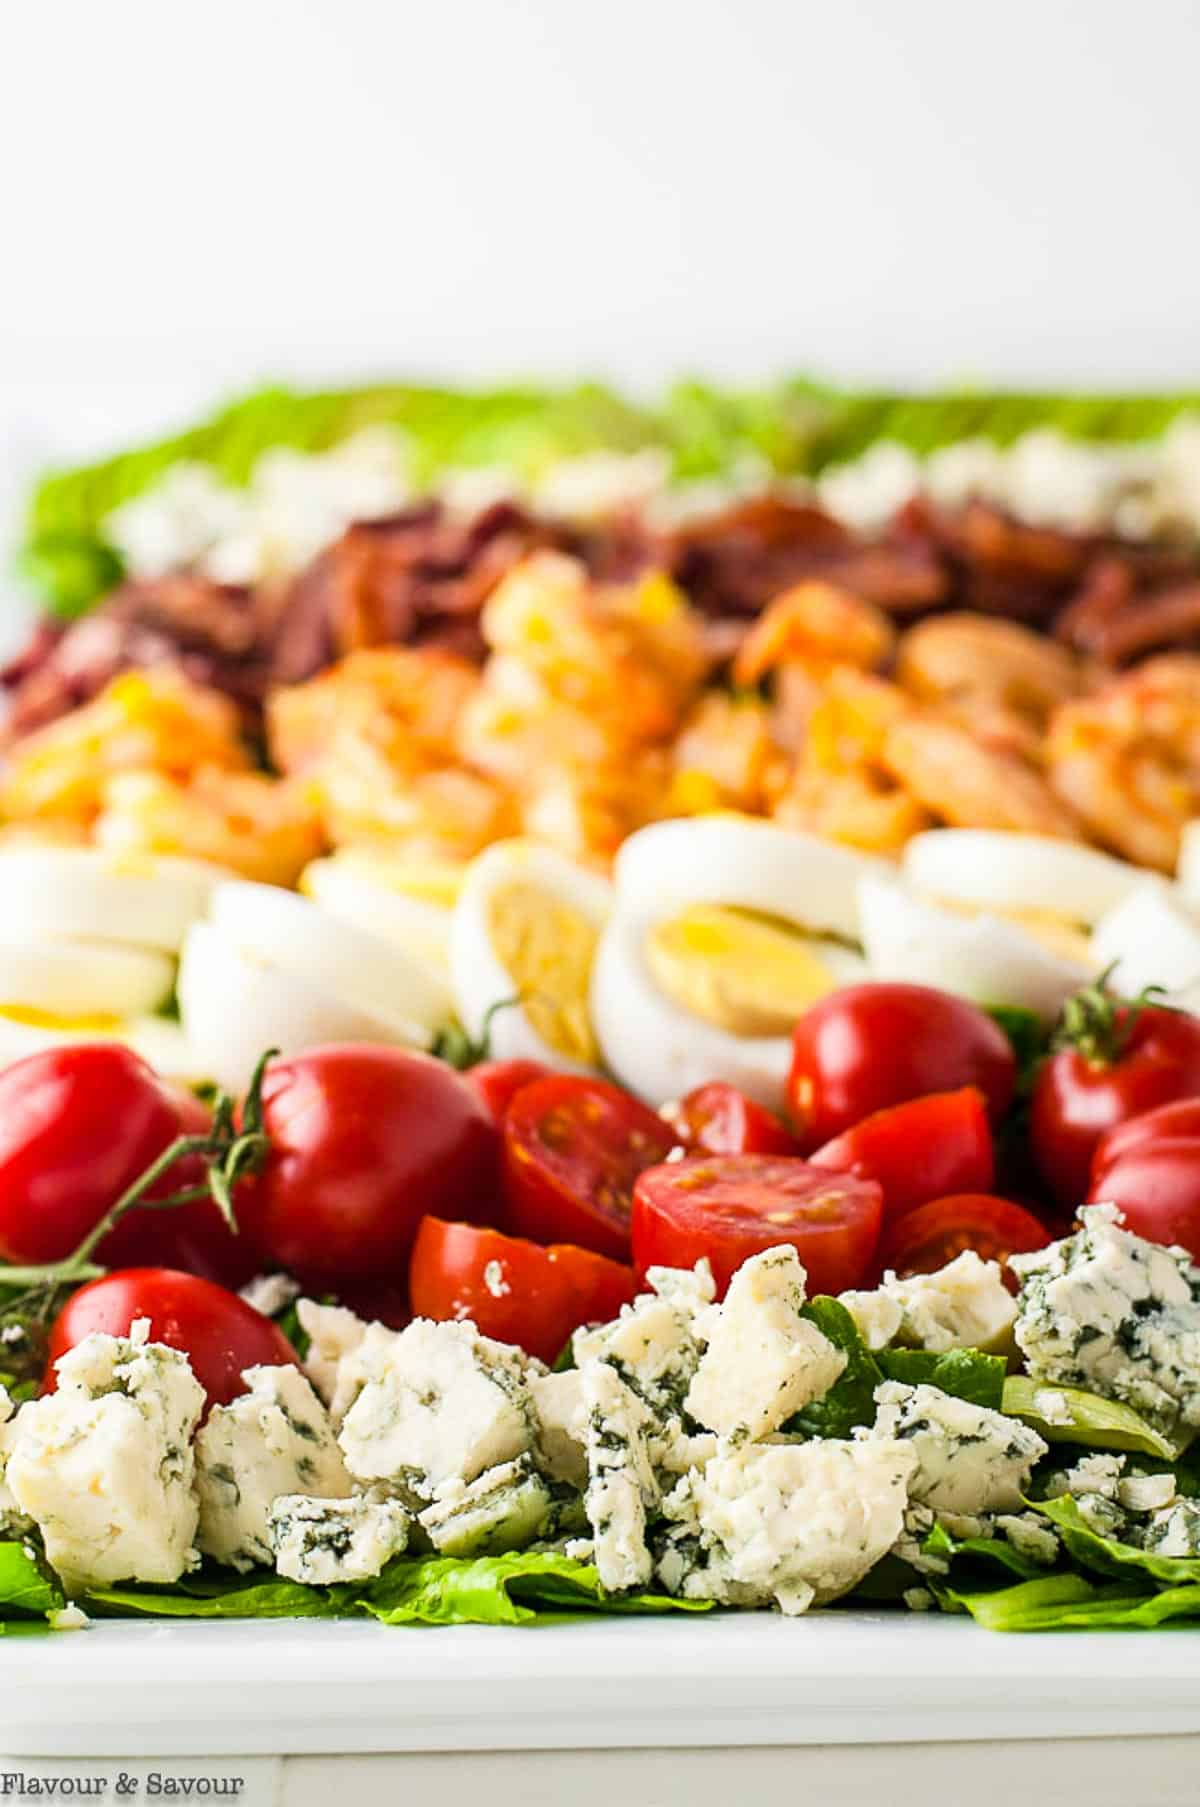 Close up view of the rows of ingredients for Shrimp Cobb Salad